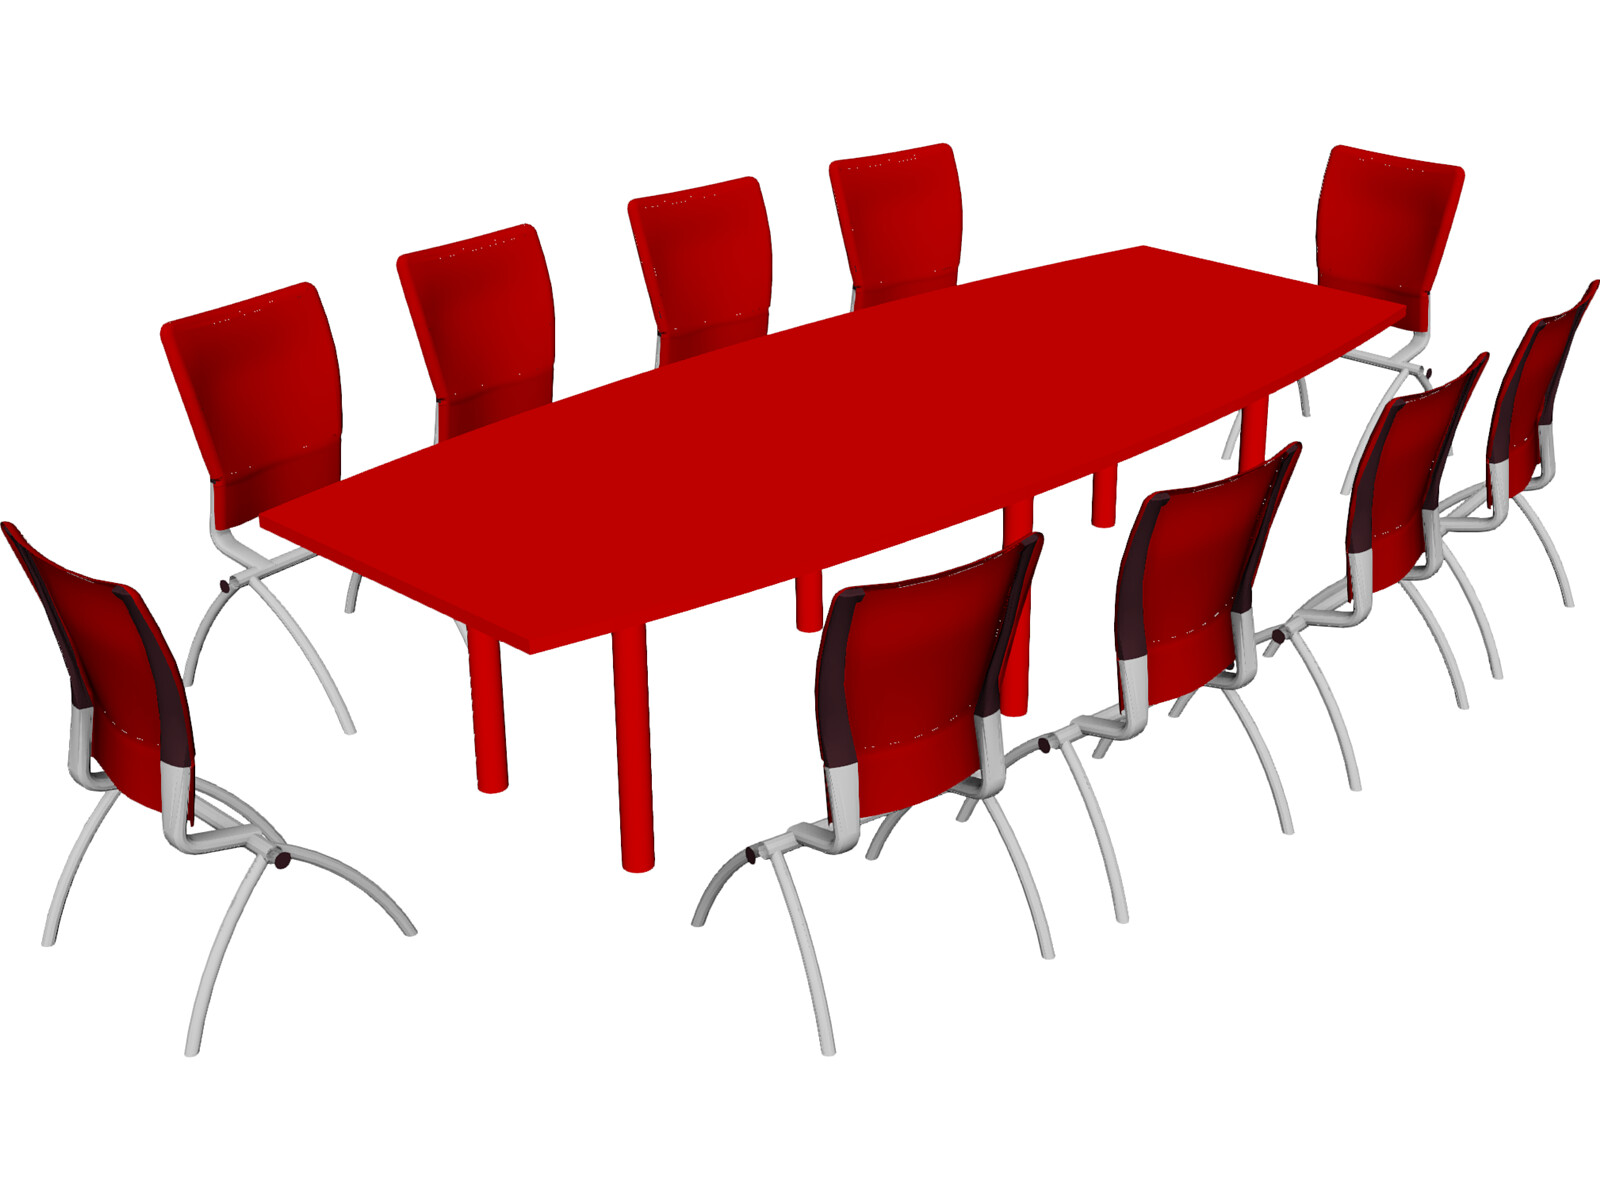 Knoll Conference Table And Chairs D Model D CAD Browser - Red conference table